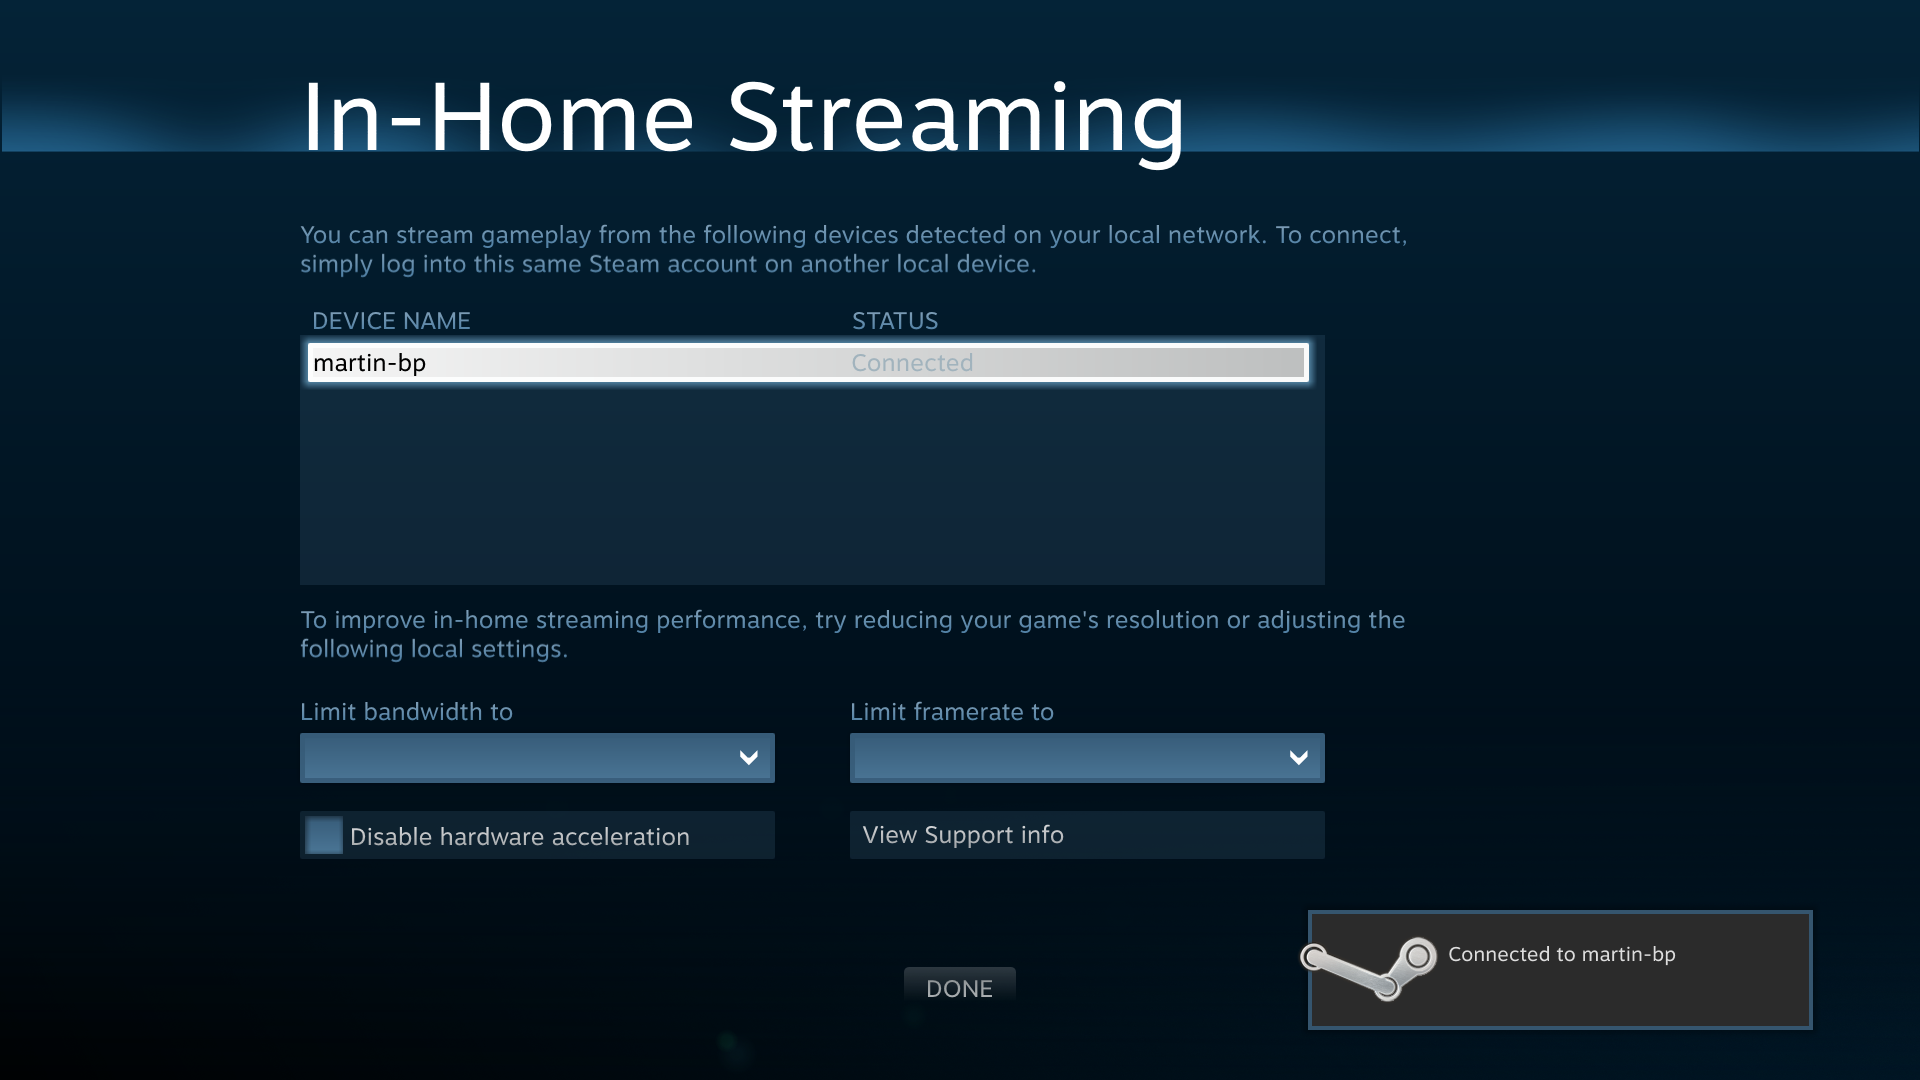 in-home streaming